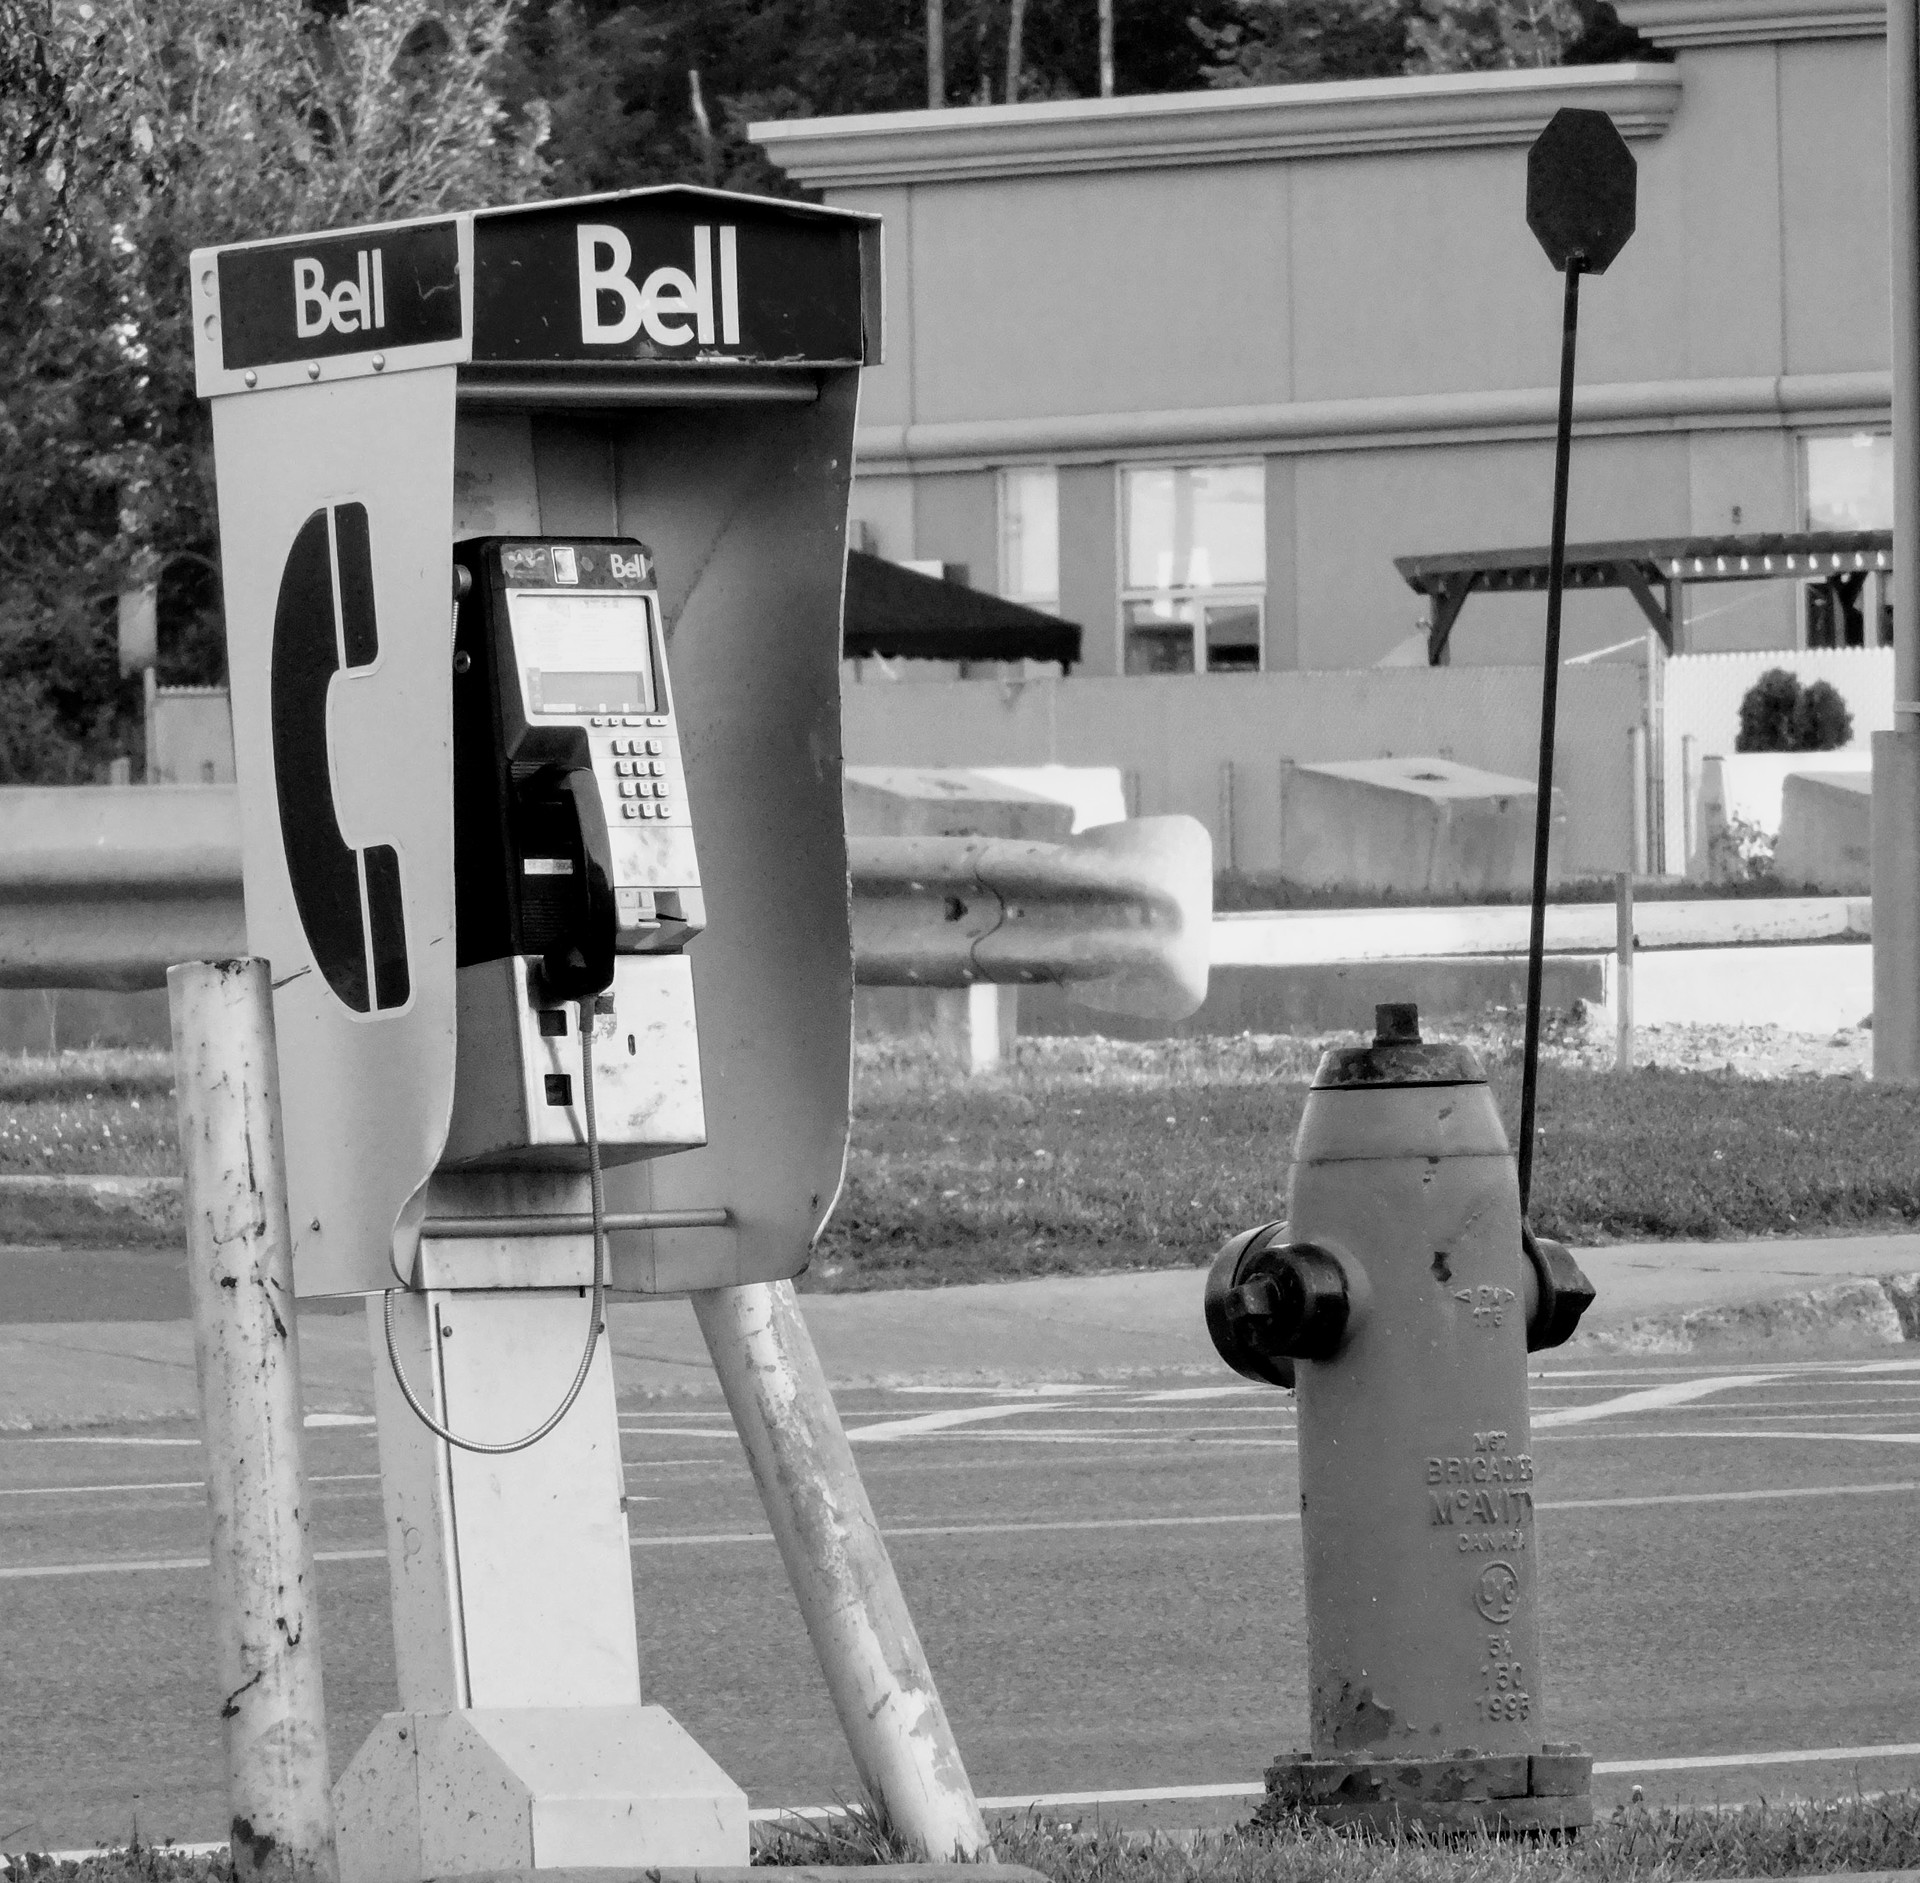 Bell phone booth | rick.cognyl.fournier, no person, outdoors, retro